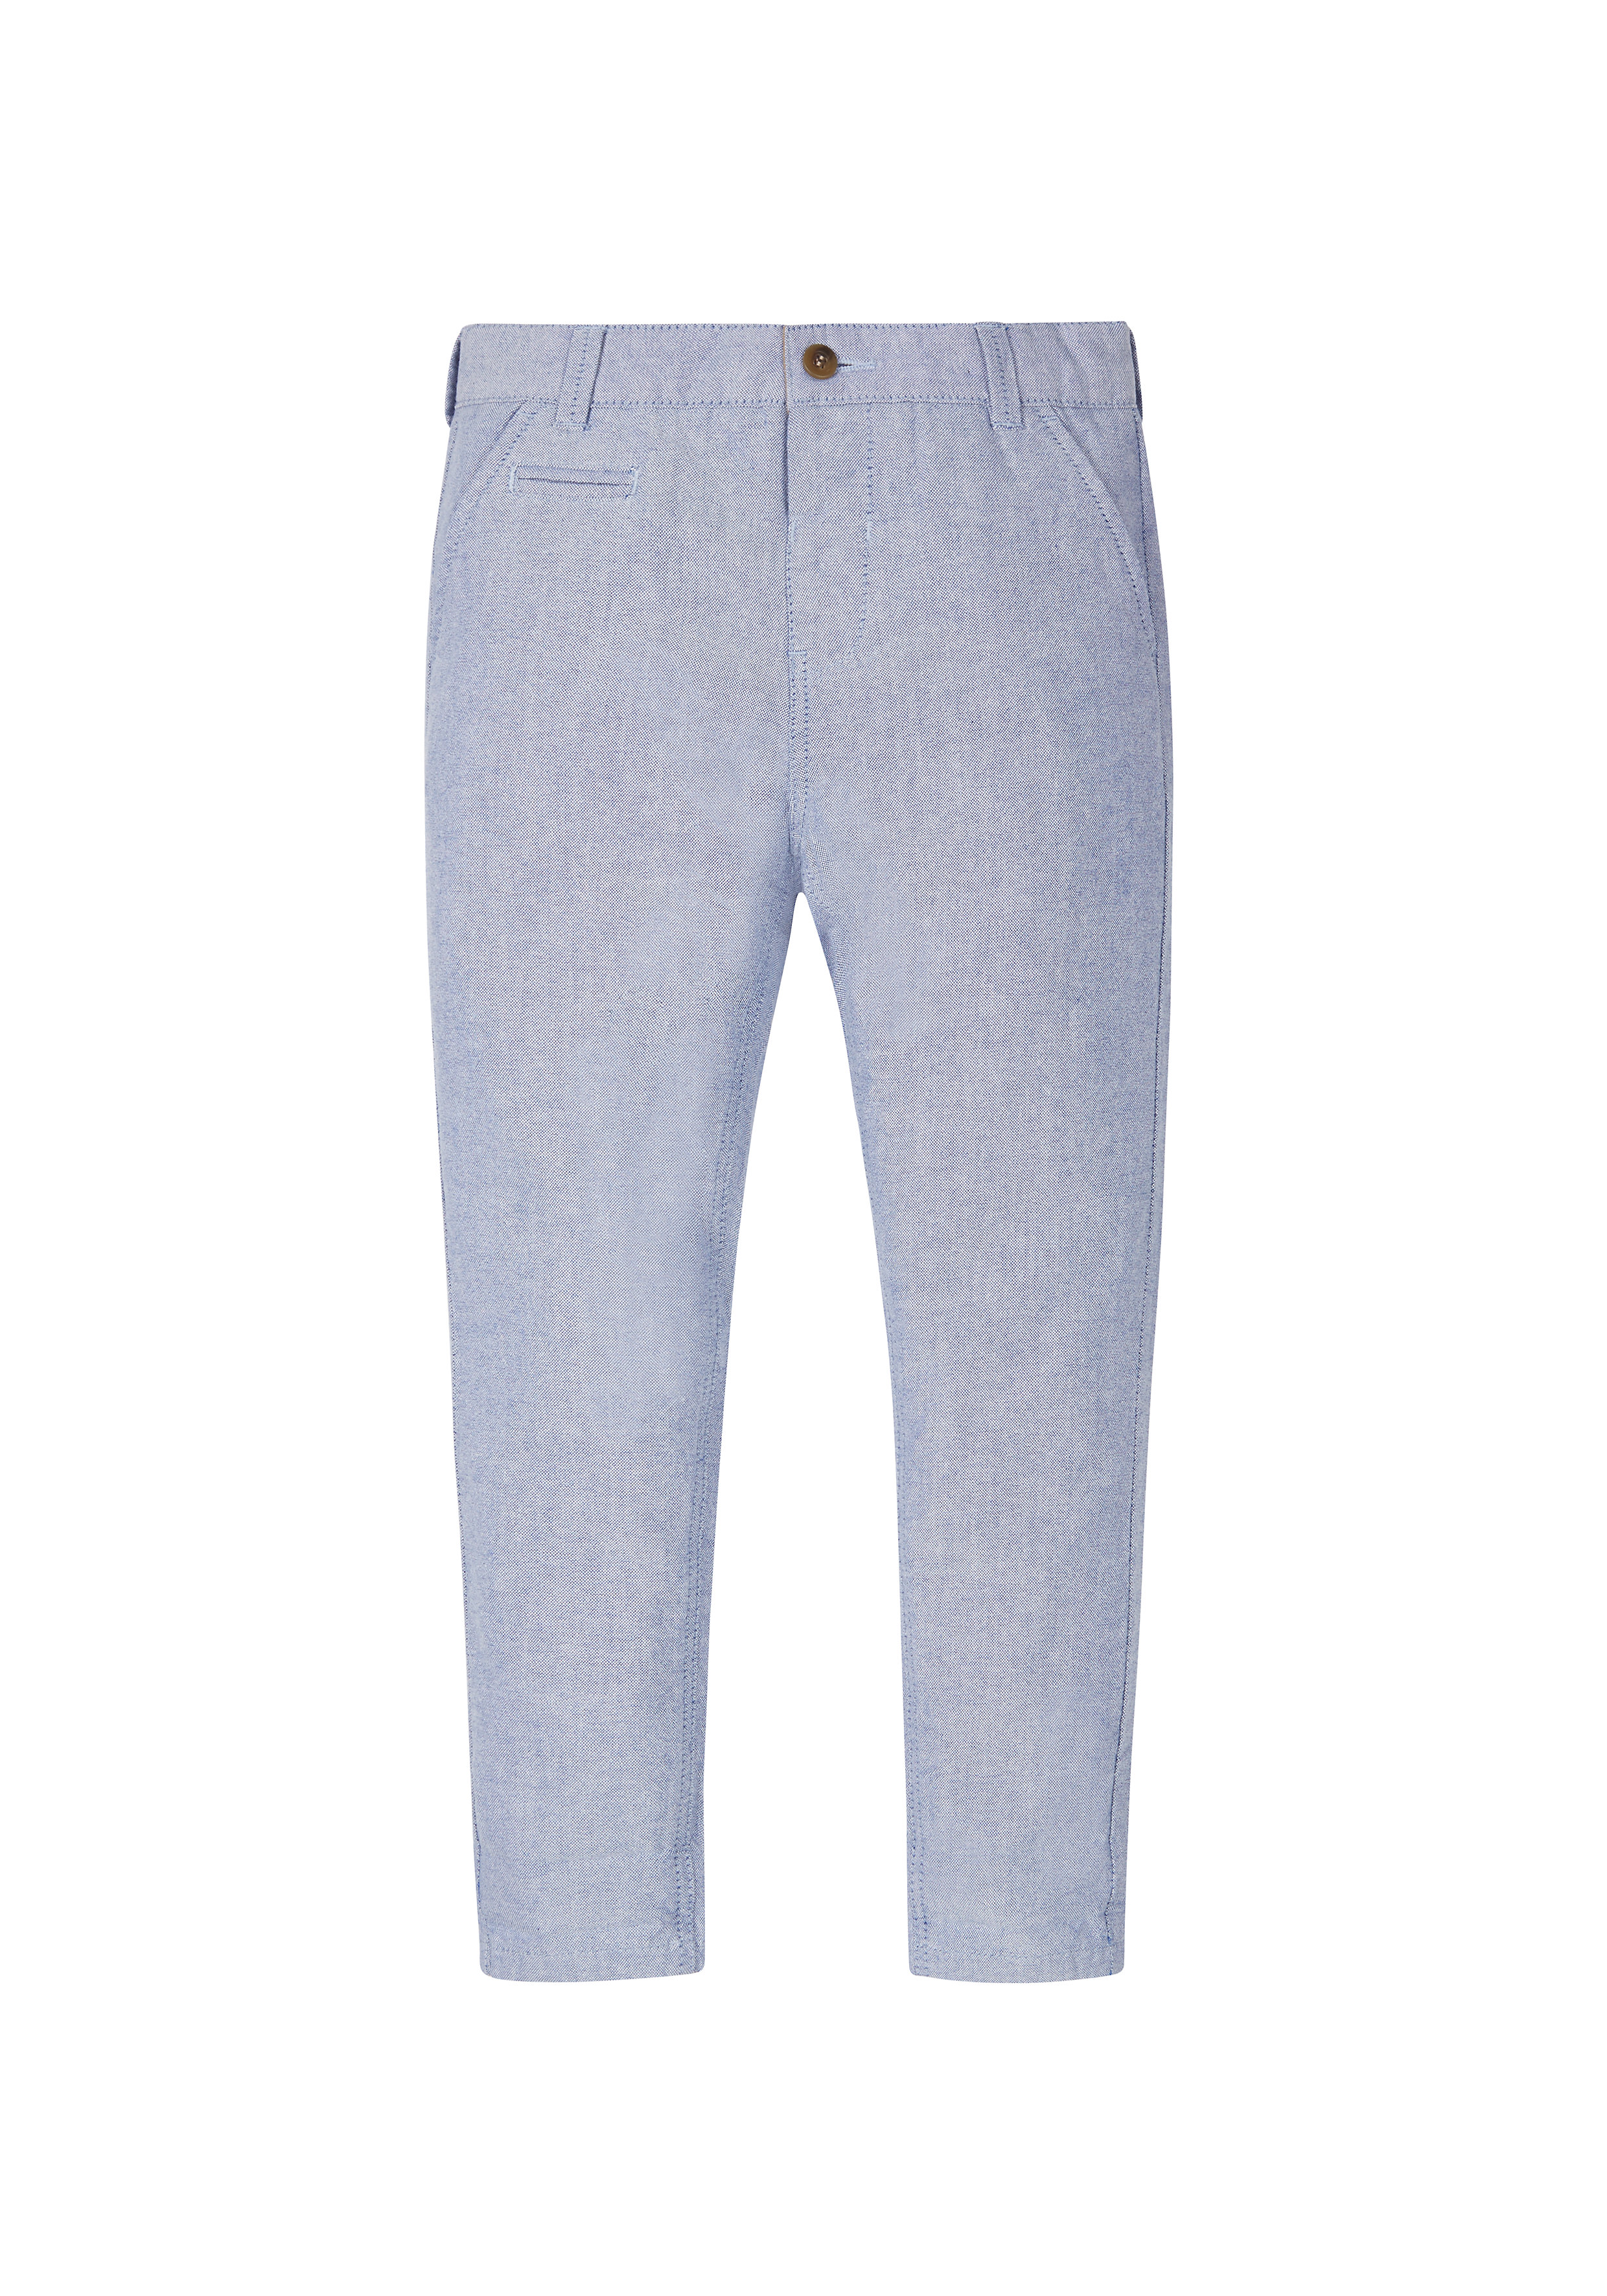 Mothercare   Boys Oxford Chino Trousers - Blue